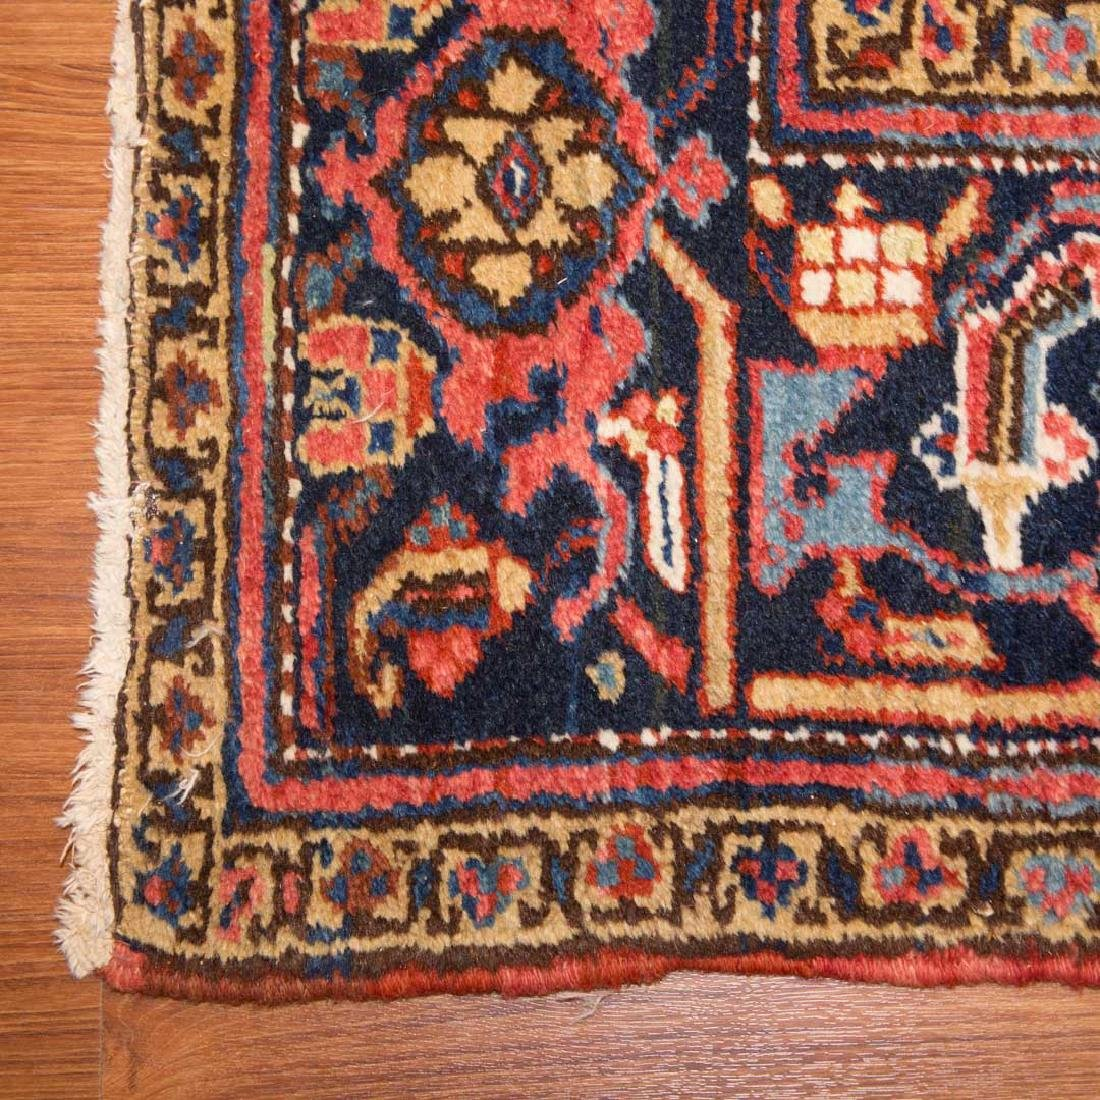 Persian Herez rug, approx. 8.9 x 11.4 - 2